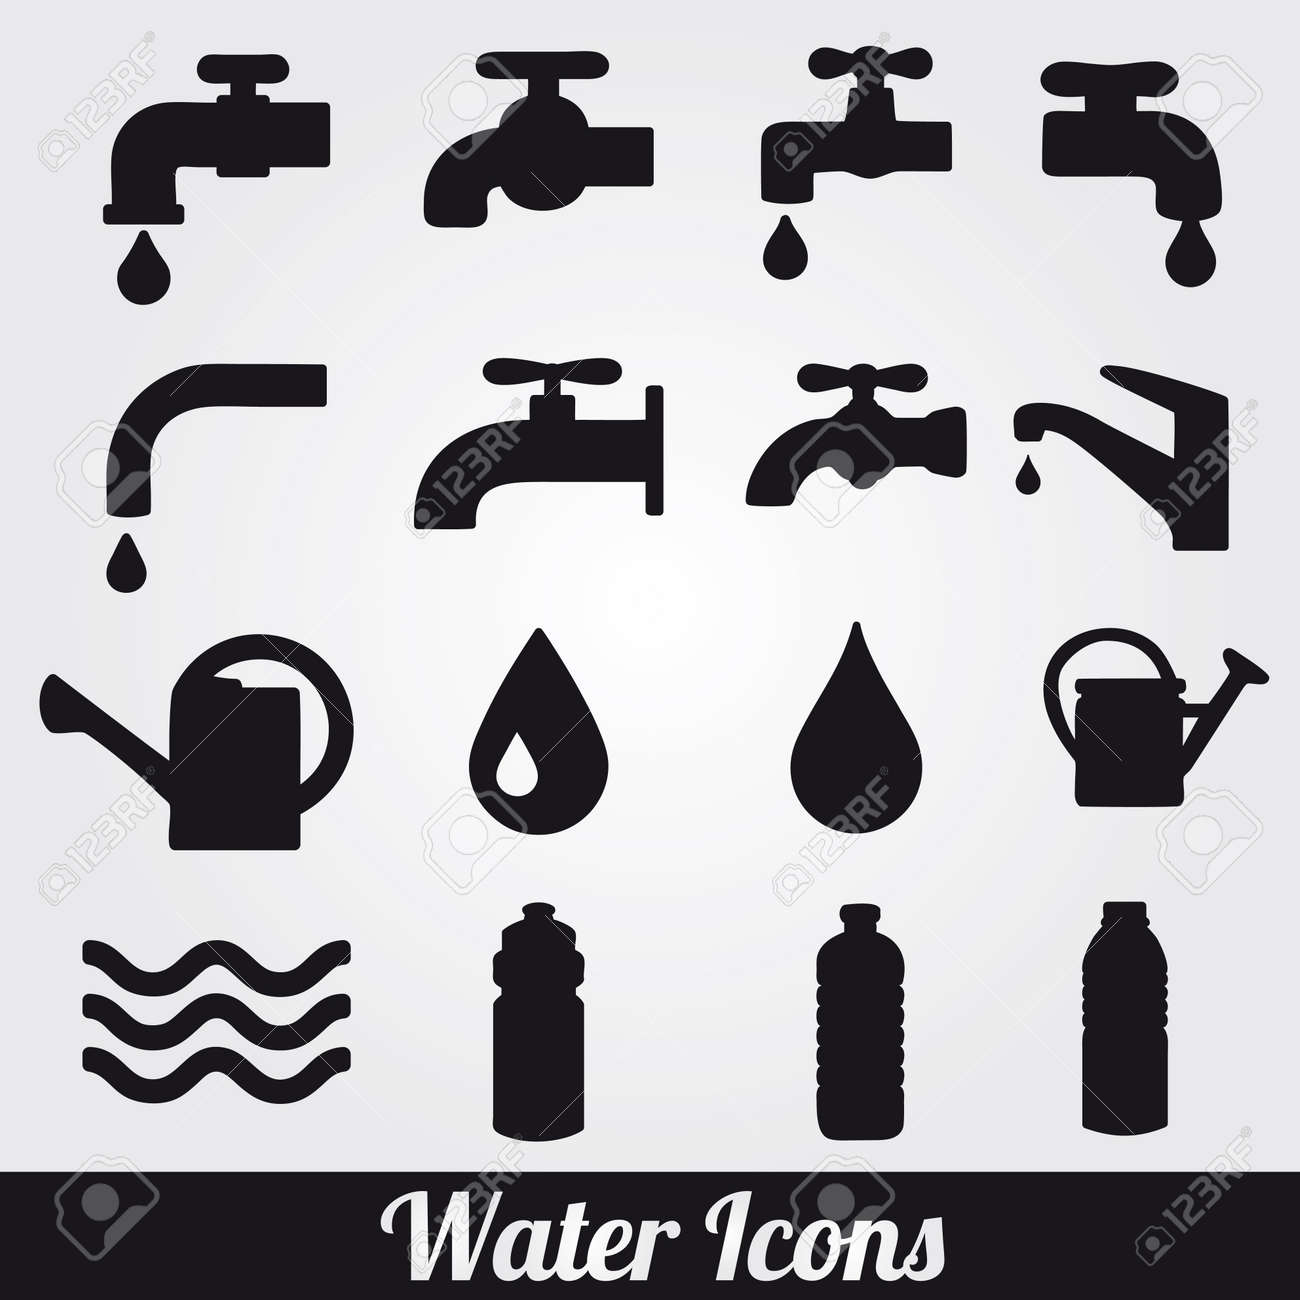 Water related icons set. - 20229682